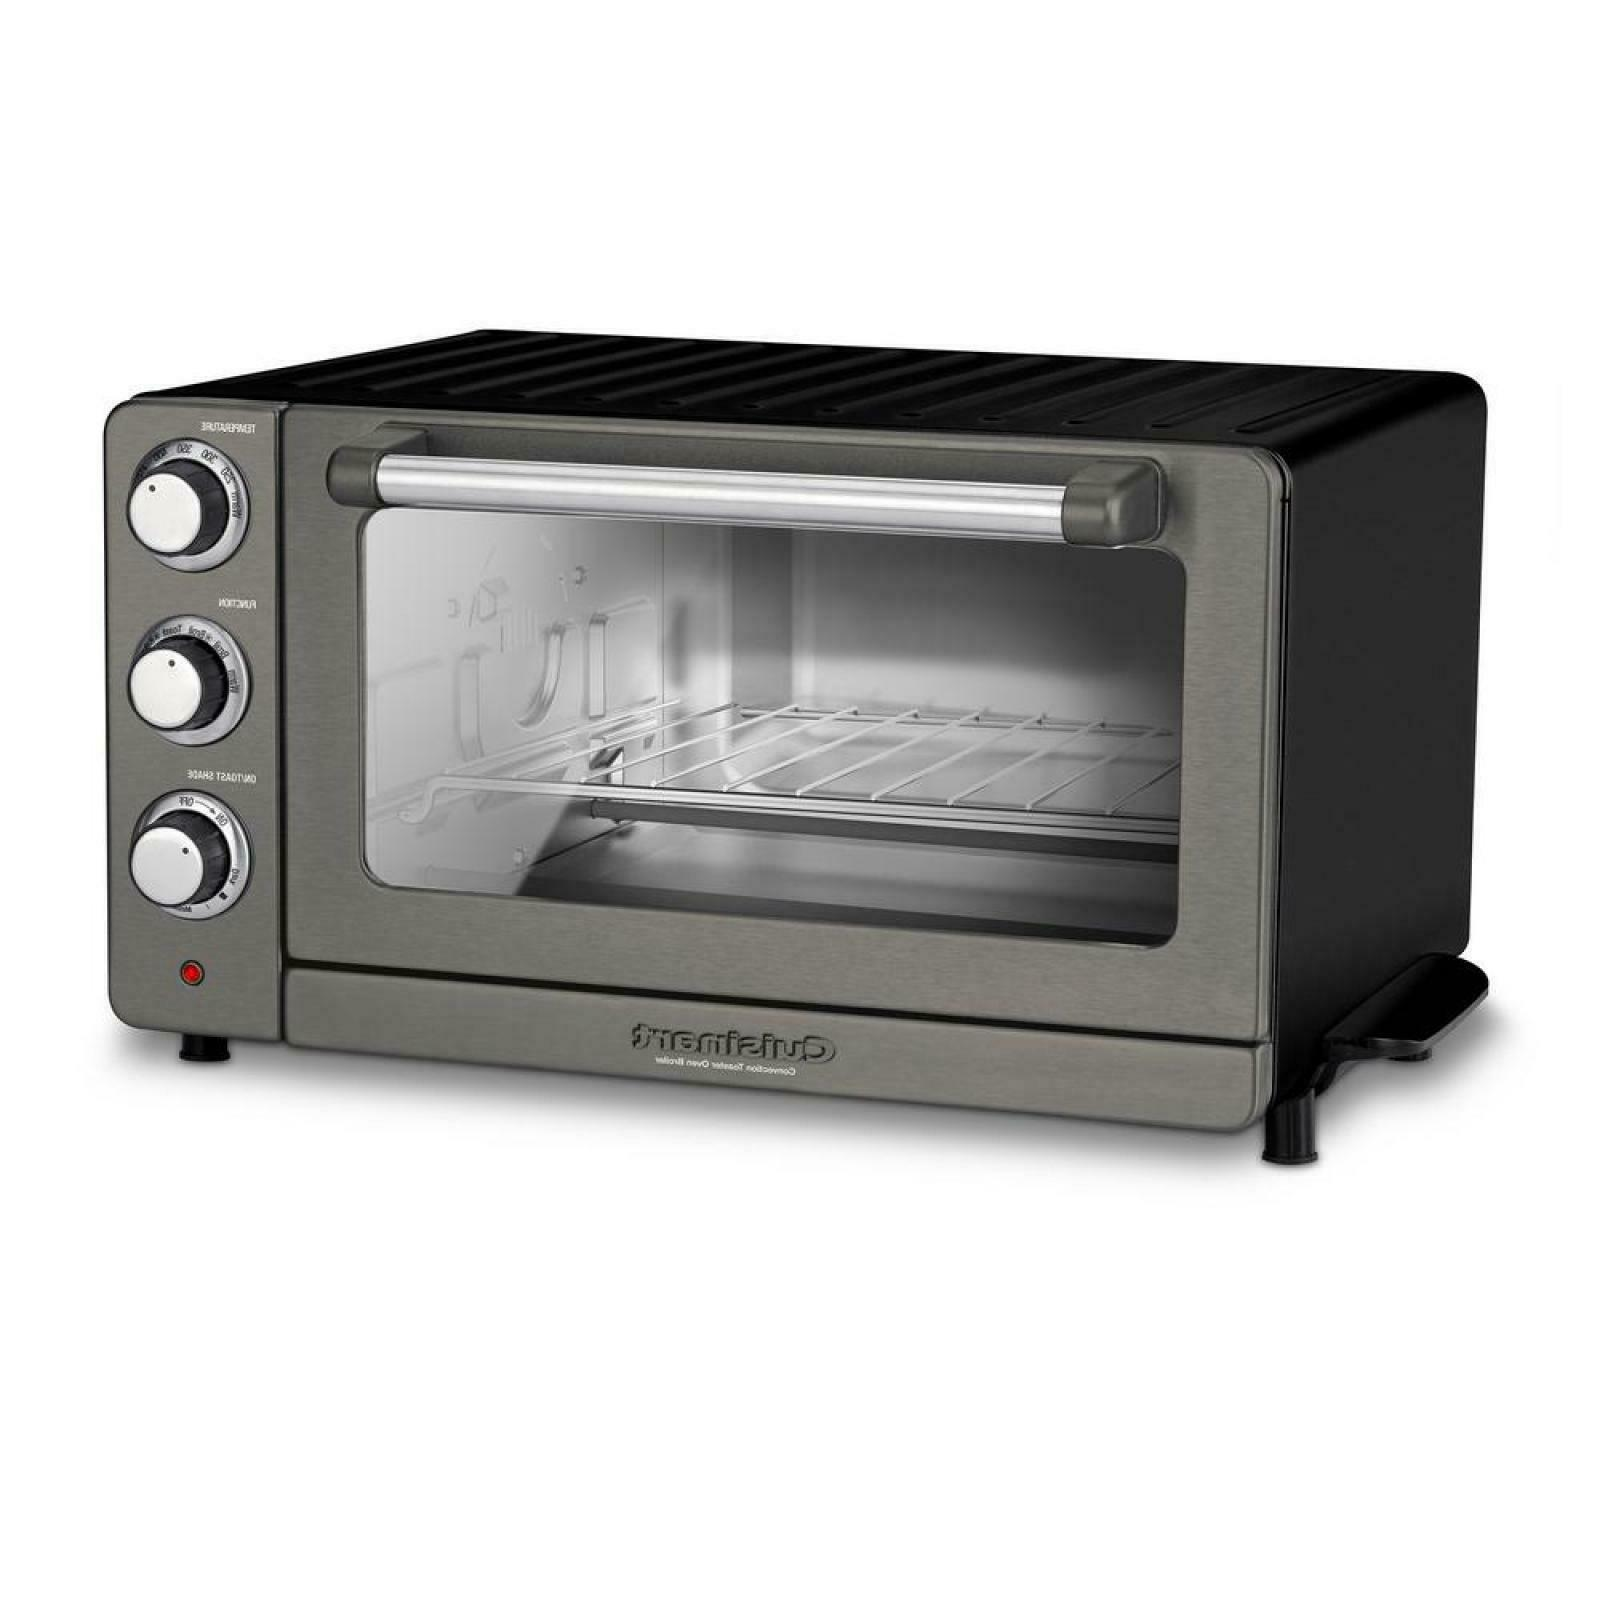 Cuisinart W Black Steel Convection Toaster with